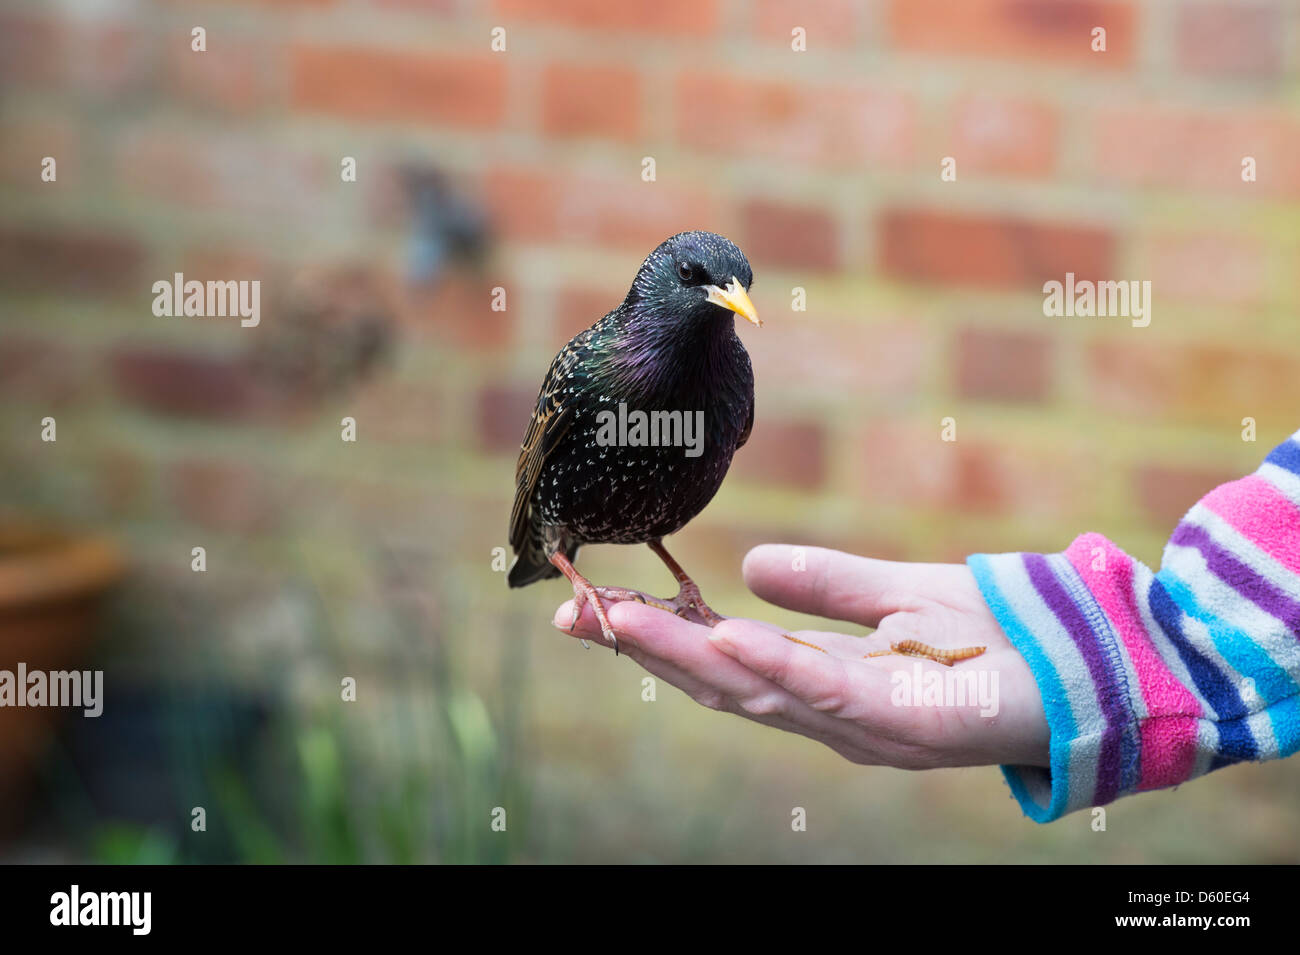 Sturnus vulgaris. Starling feeding on mealworms from a womans hand - Stock Image